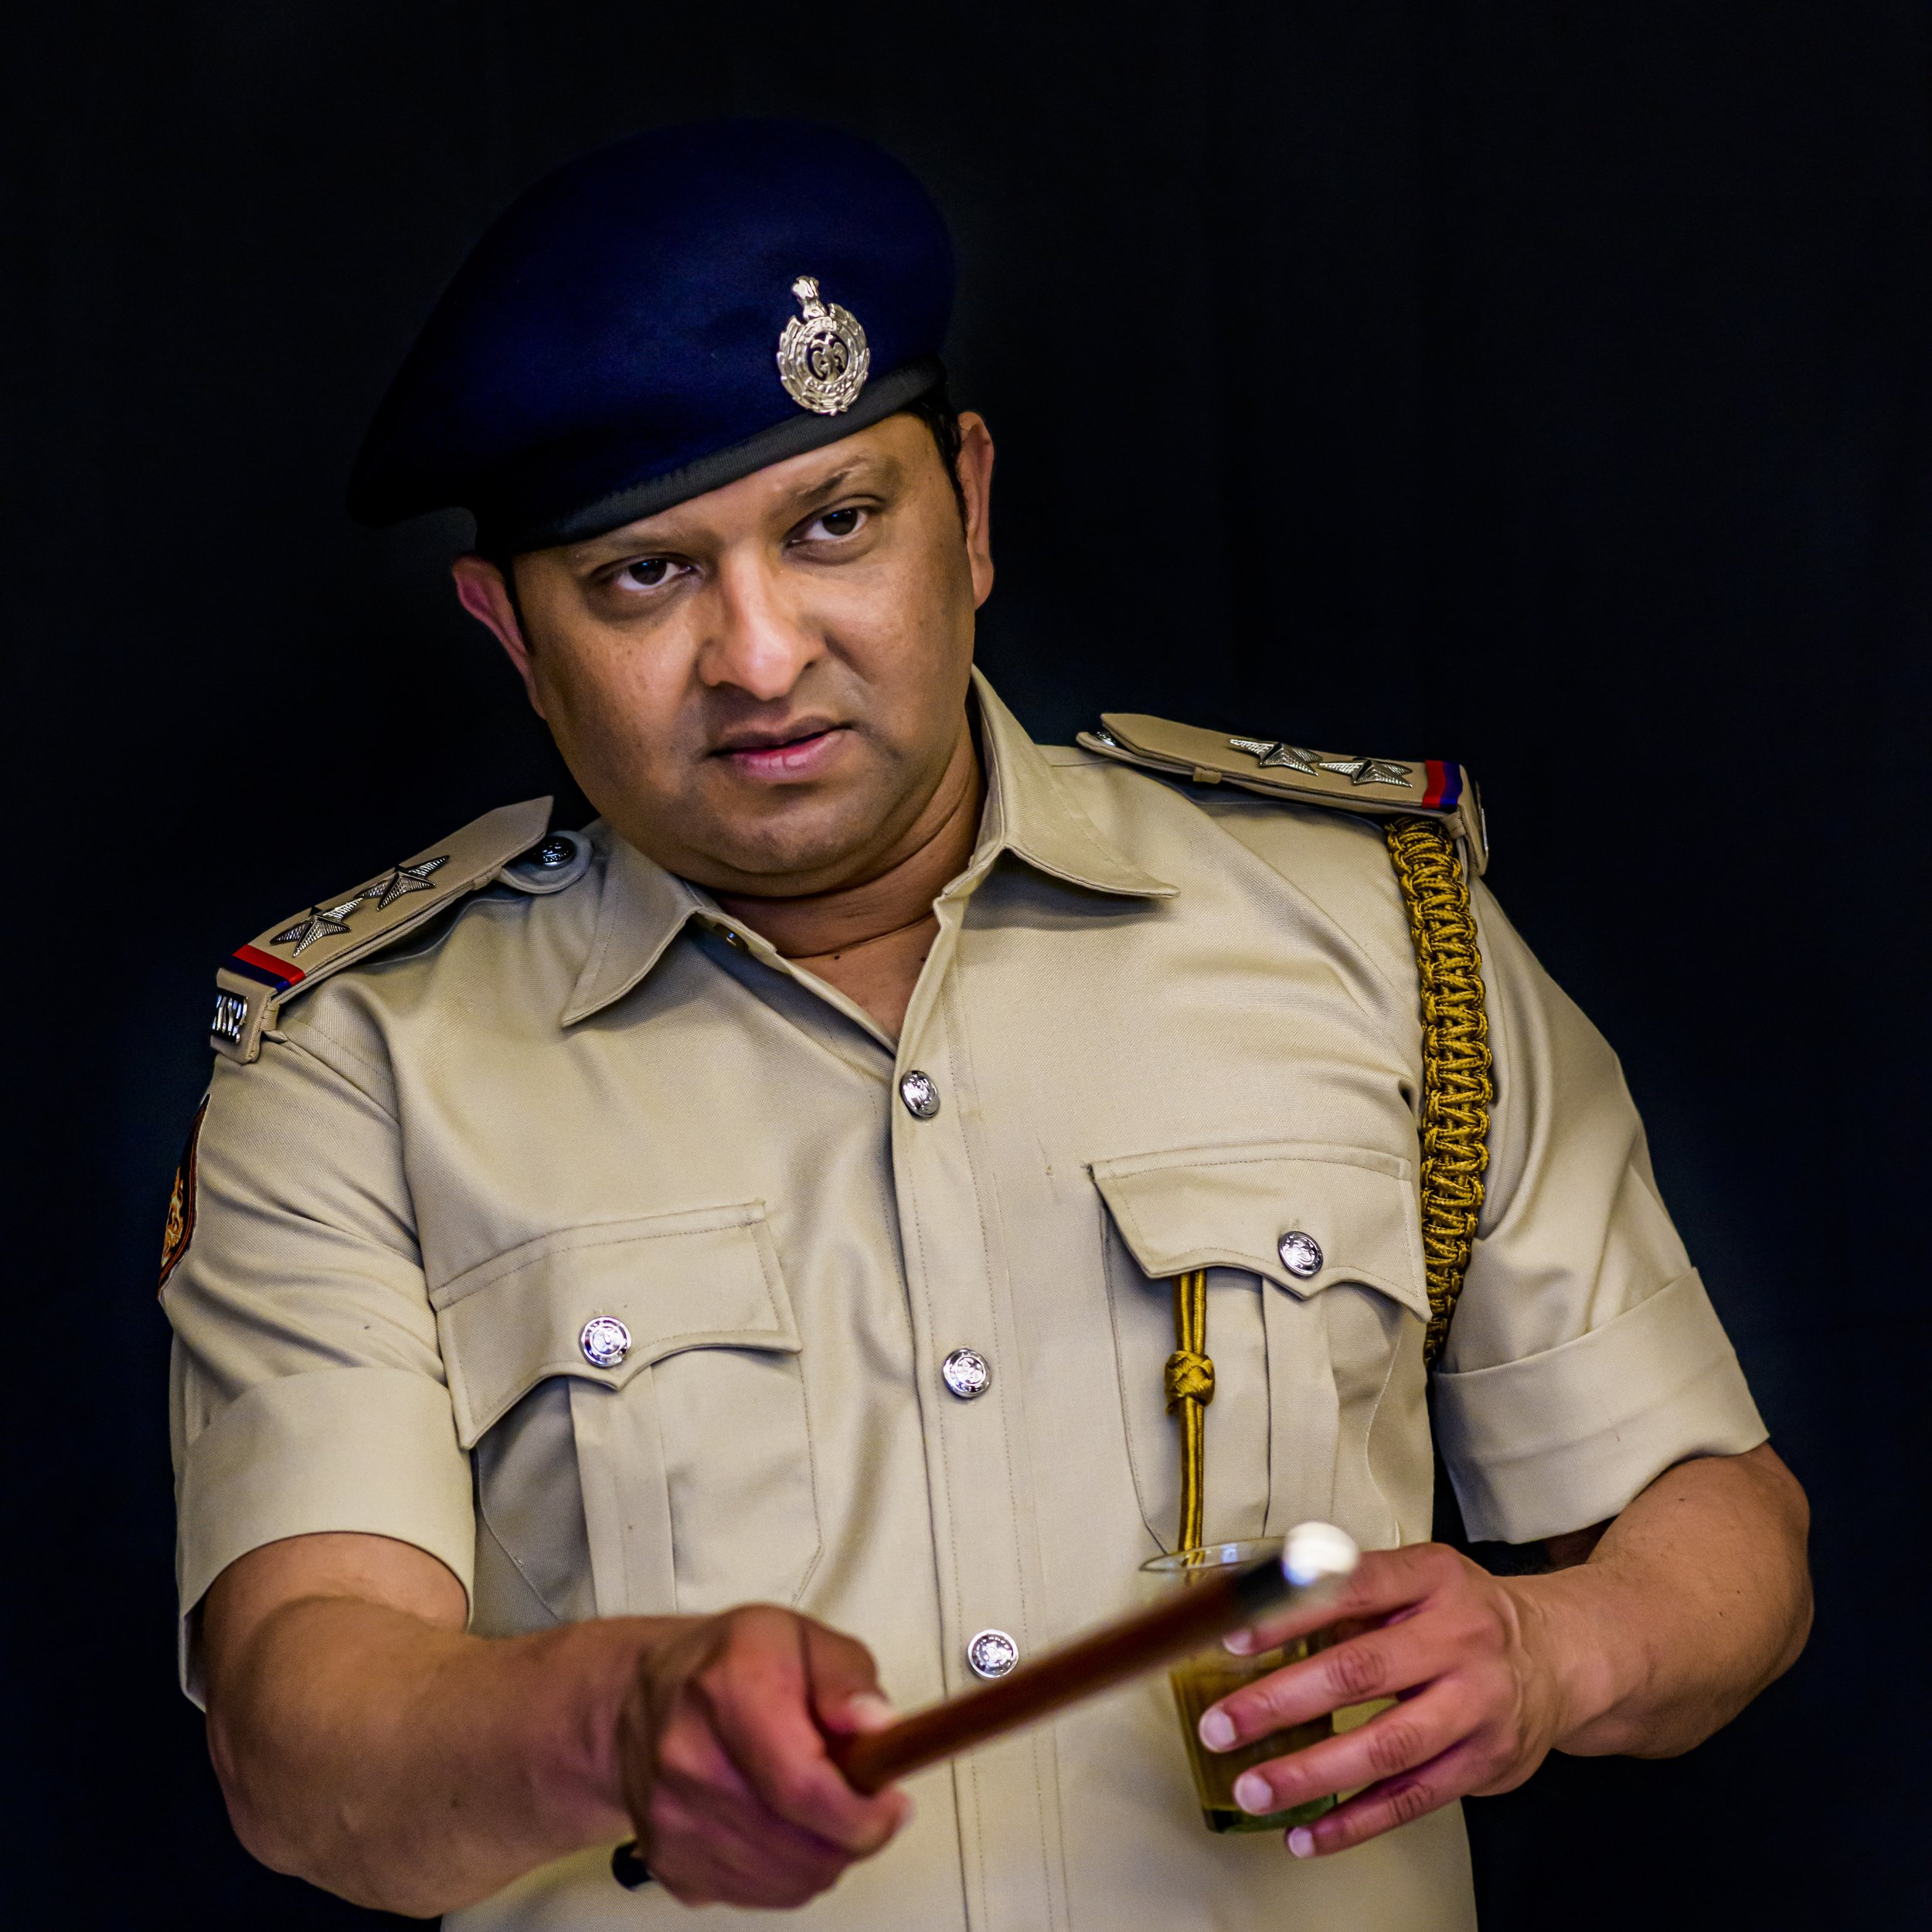 Inspector - Protector of the law. But needs protection from crazy women.Played by Pratish Shah